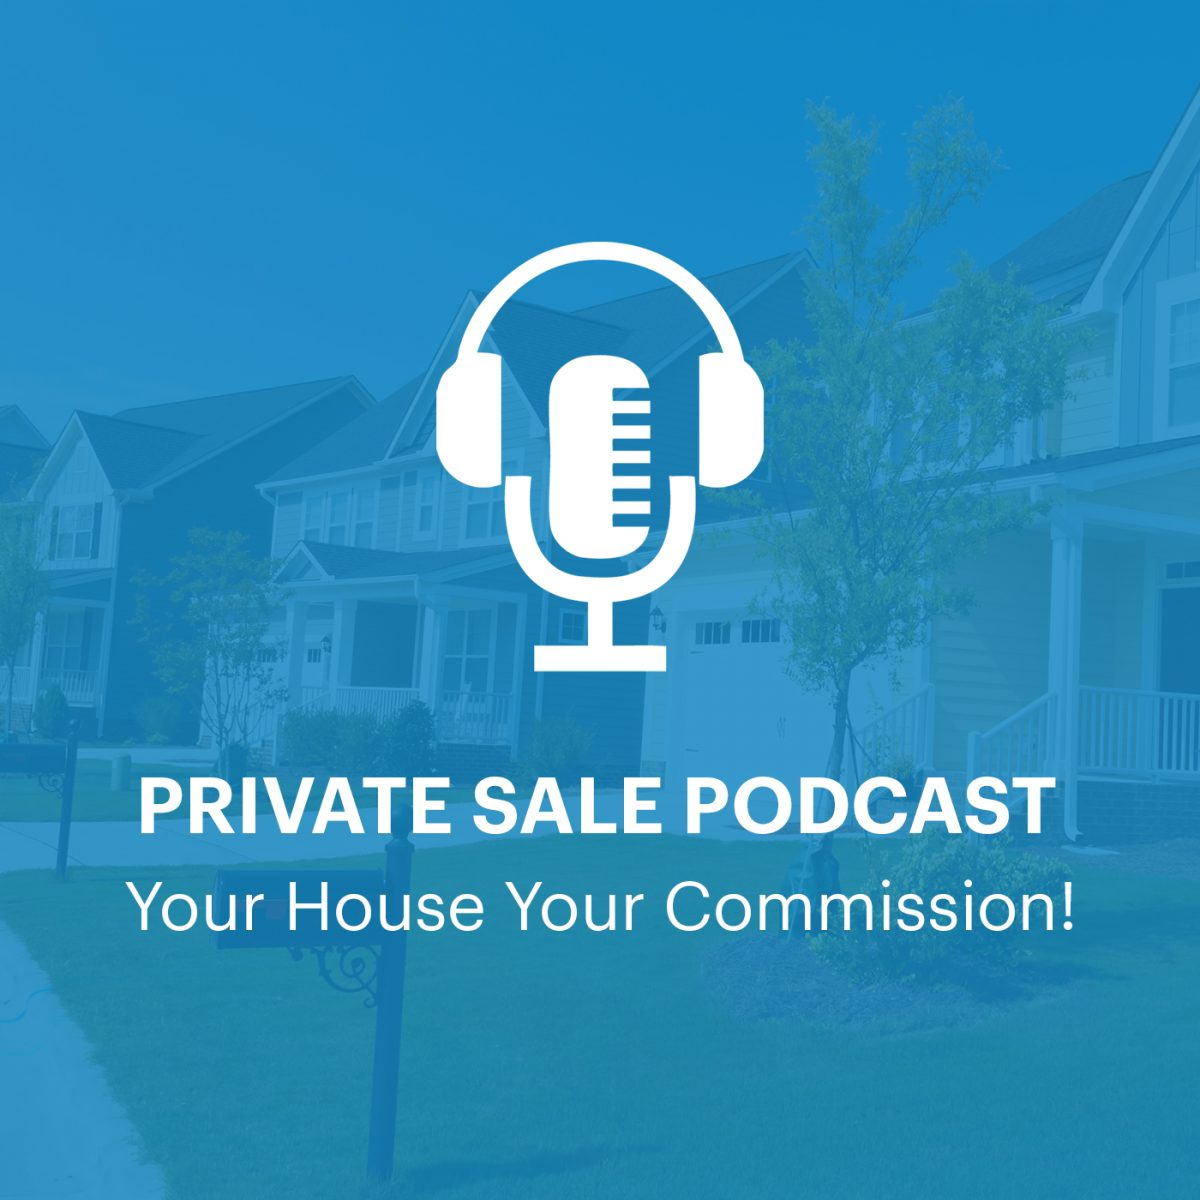 Private Sale Podcast